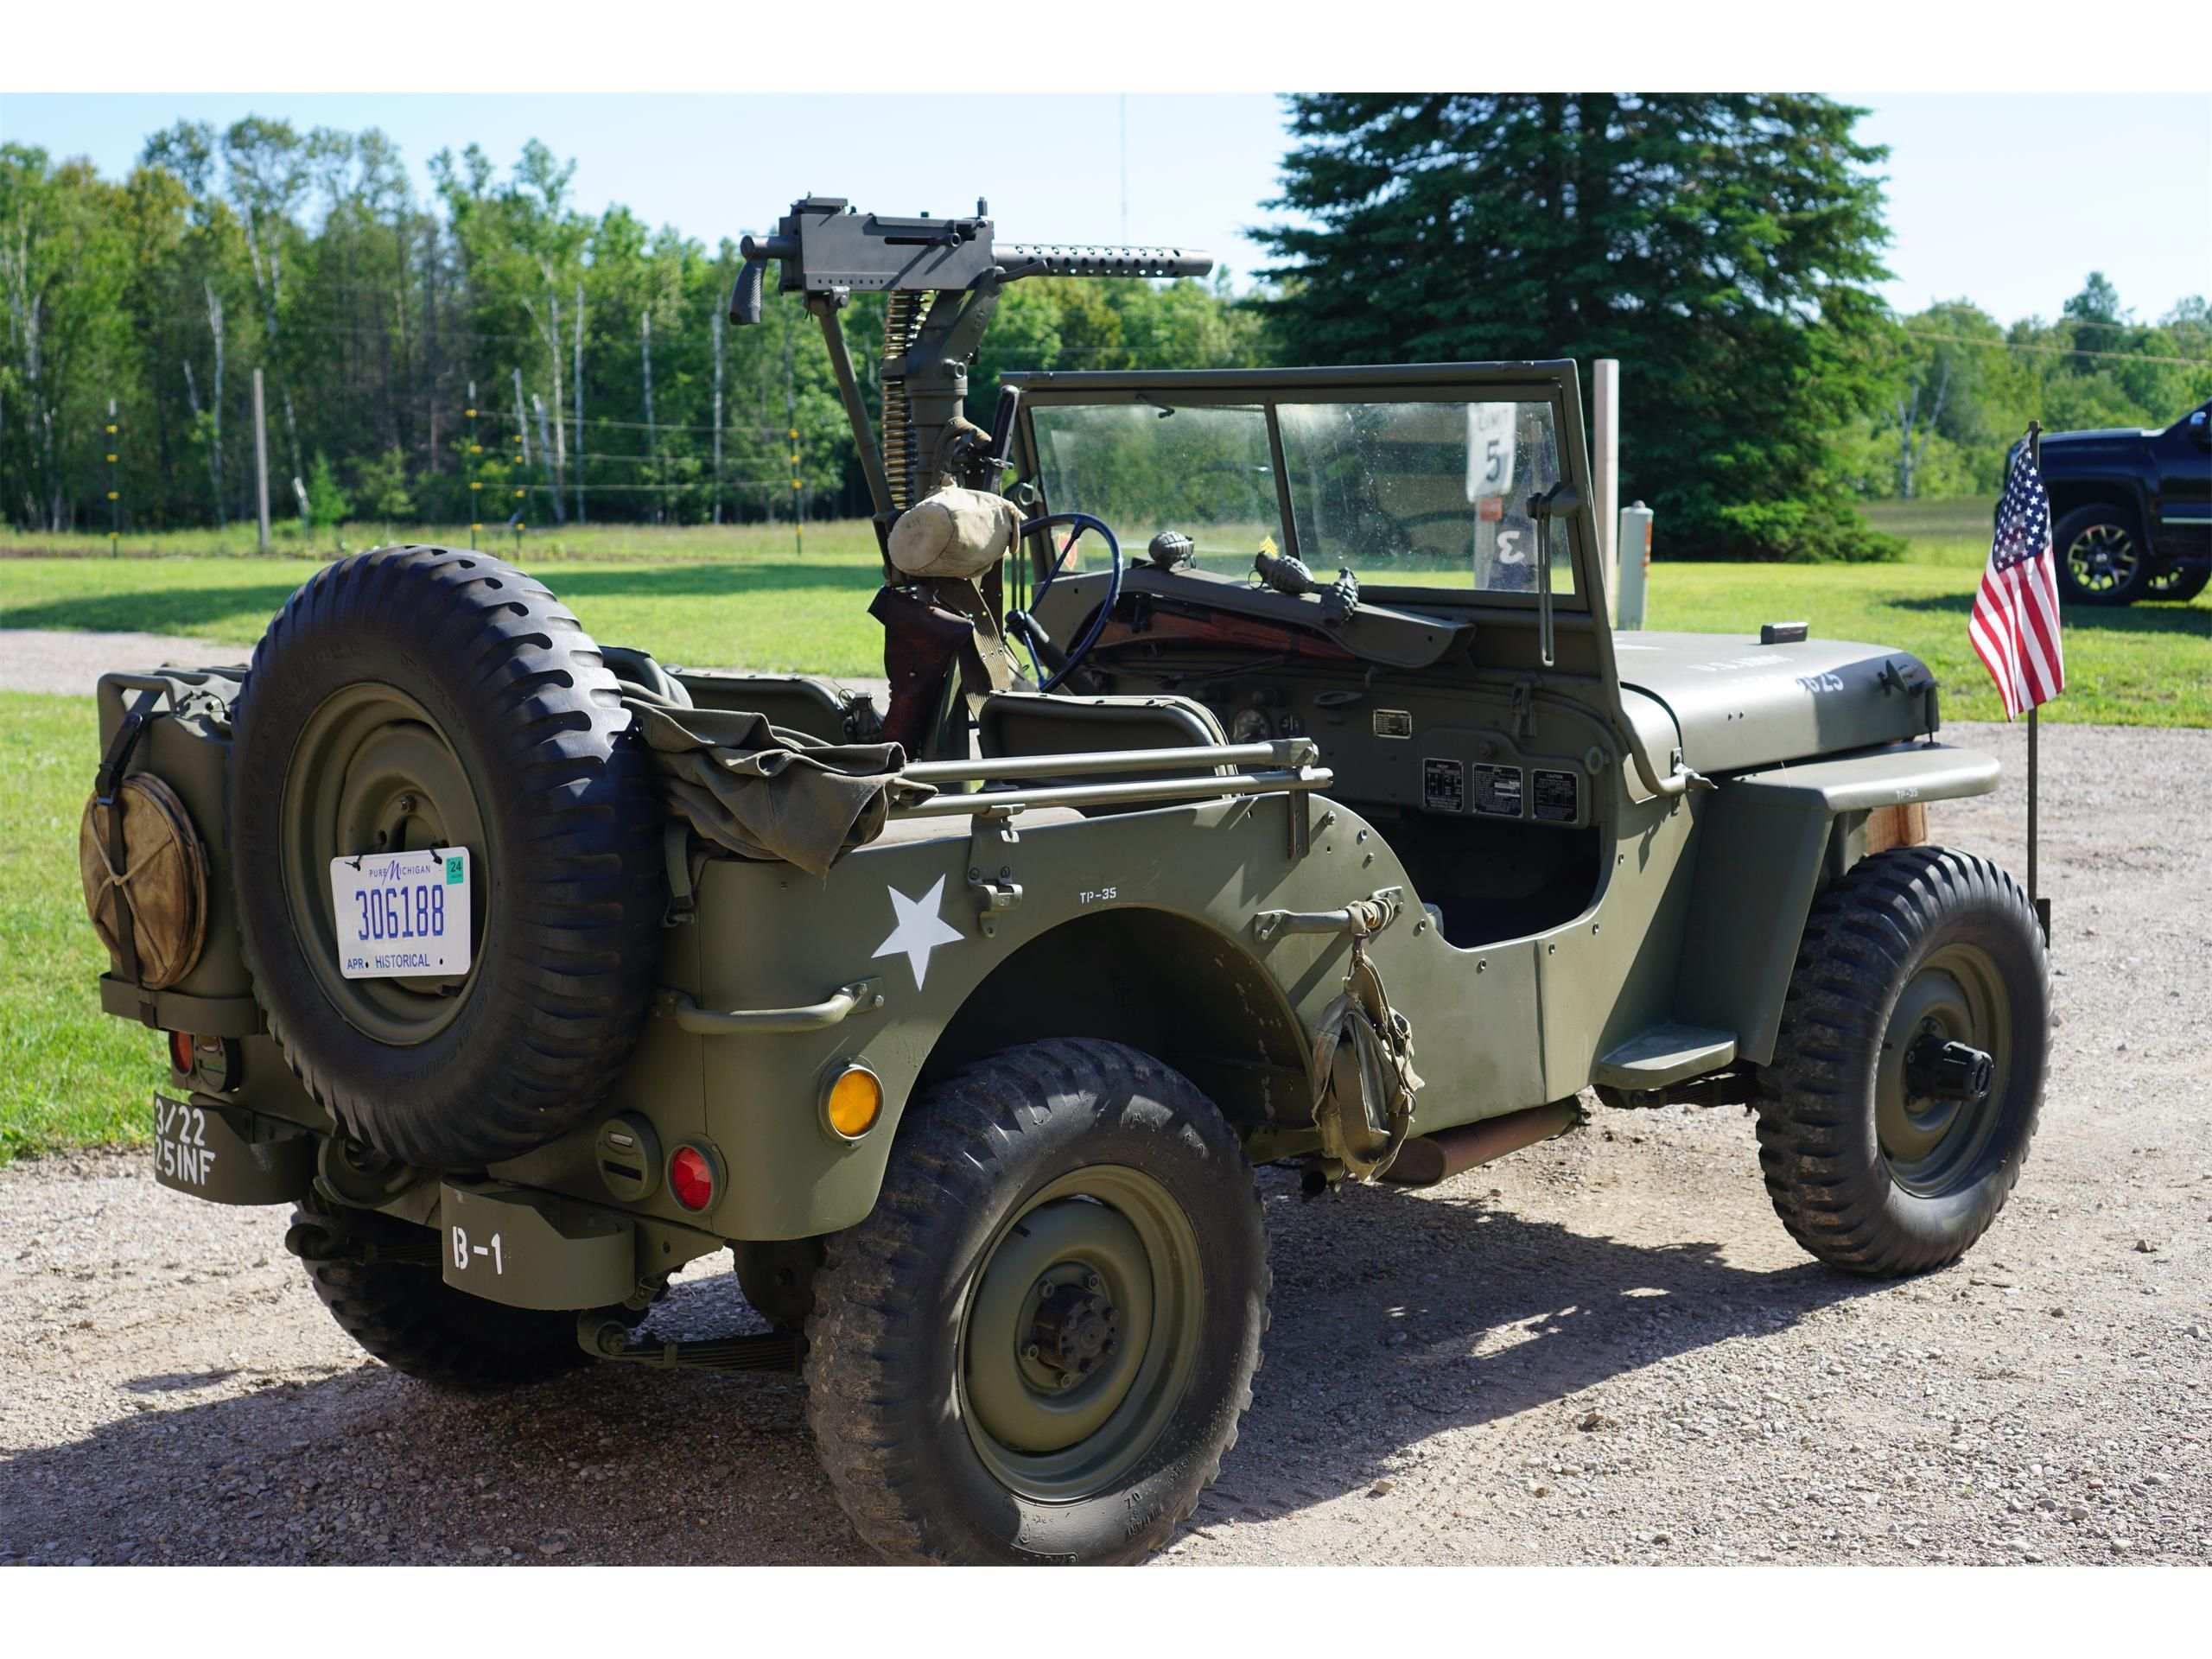 1945 Ford Gpw For Sale Listing Id Cc 1103877 Classiccars Com Driveyourdream Fordgpw Classiccarsdotcom Military Vehicles For Sale Willys Jeep Ford